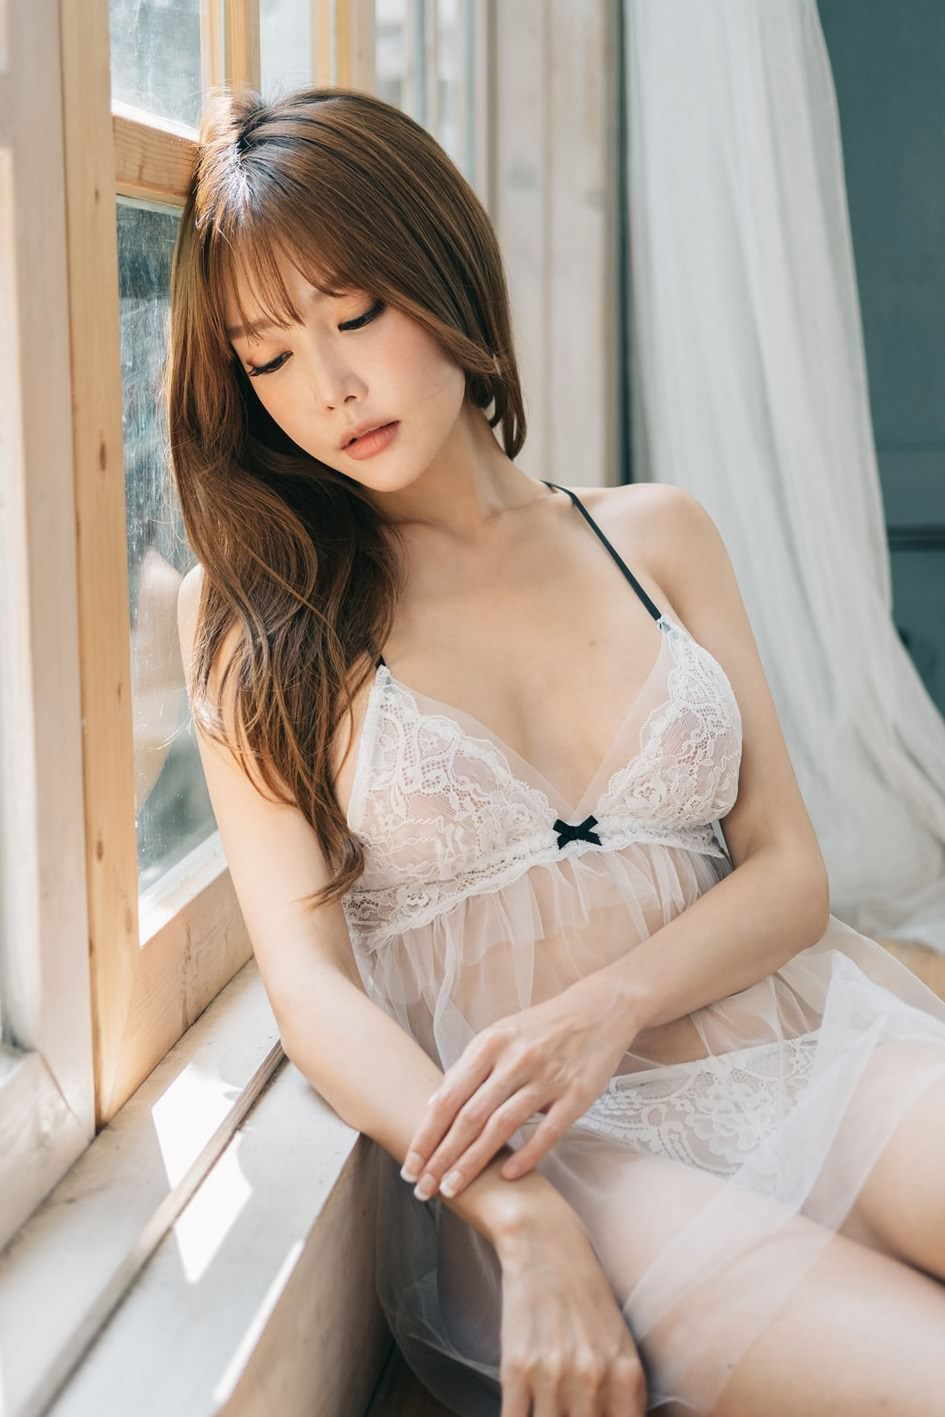 hot Korean girl wearing see through lingerie